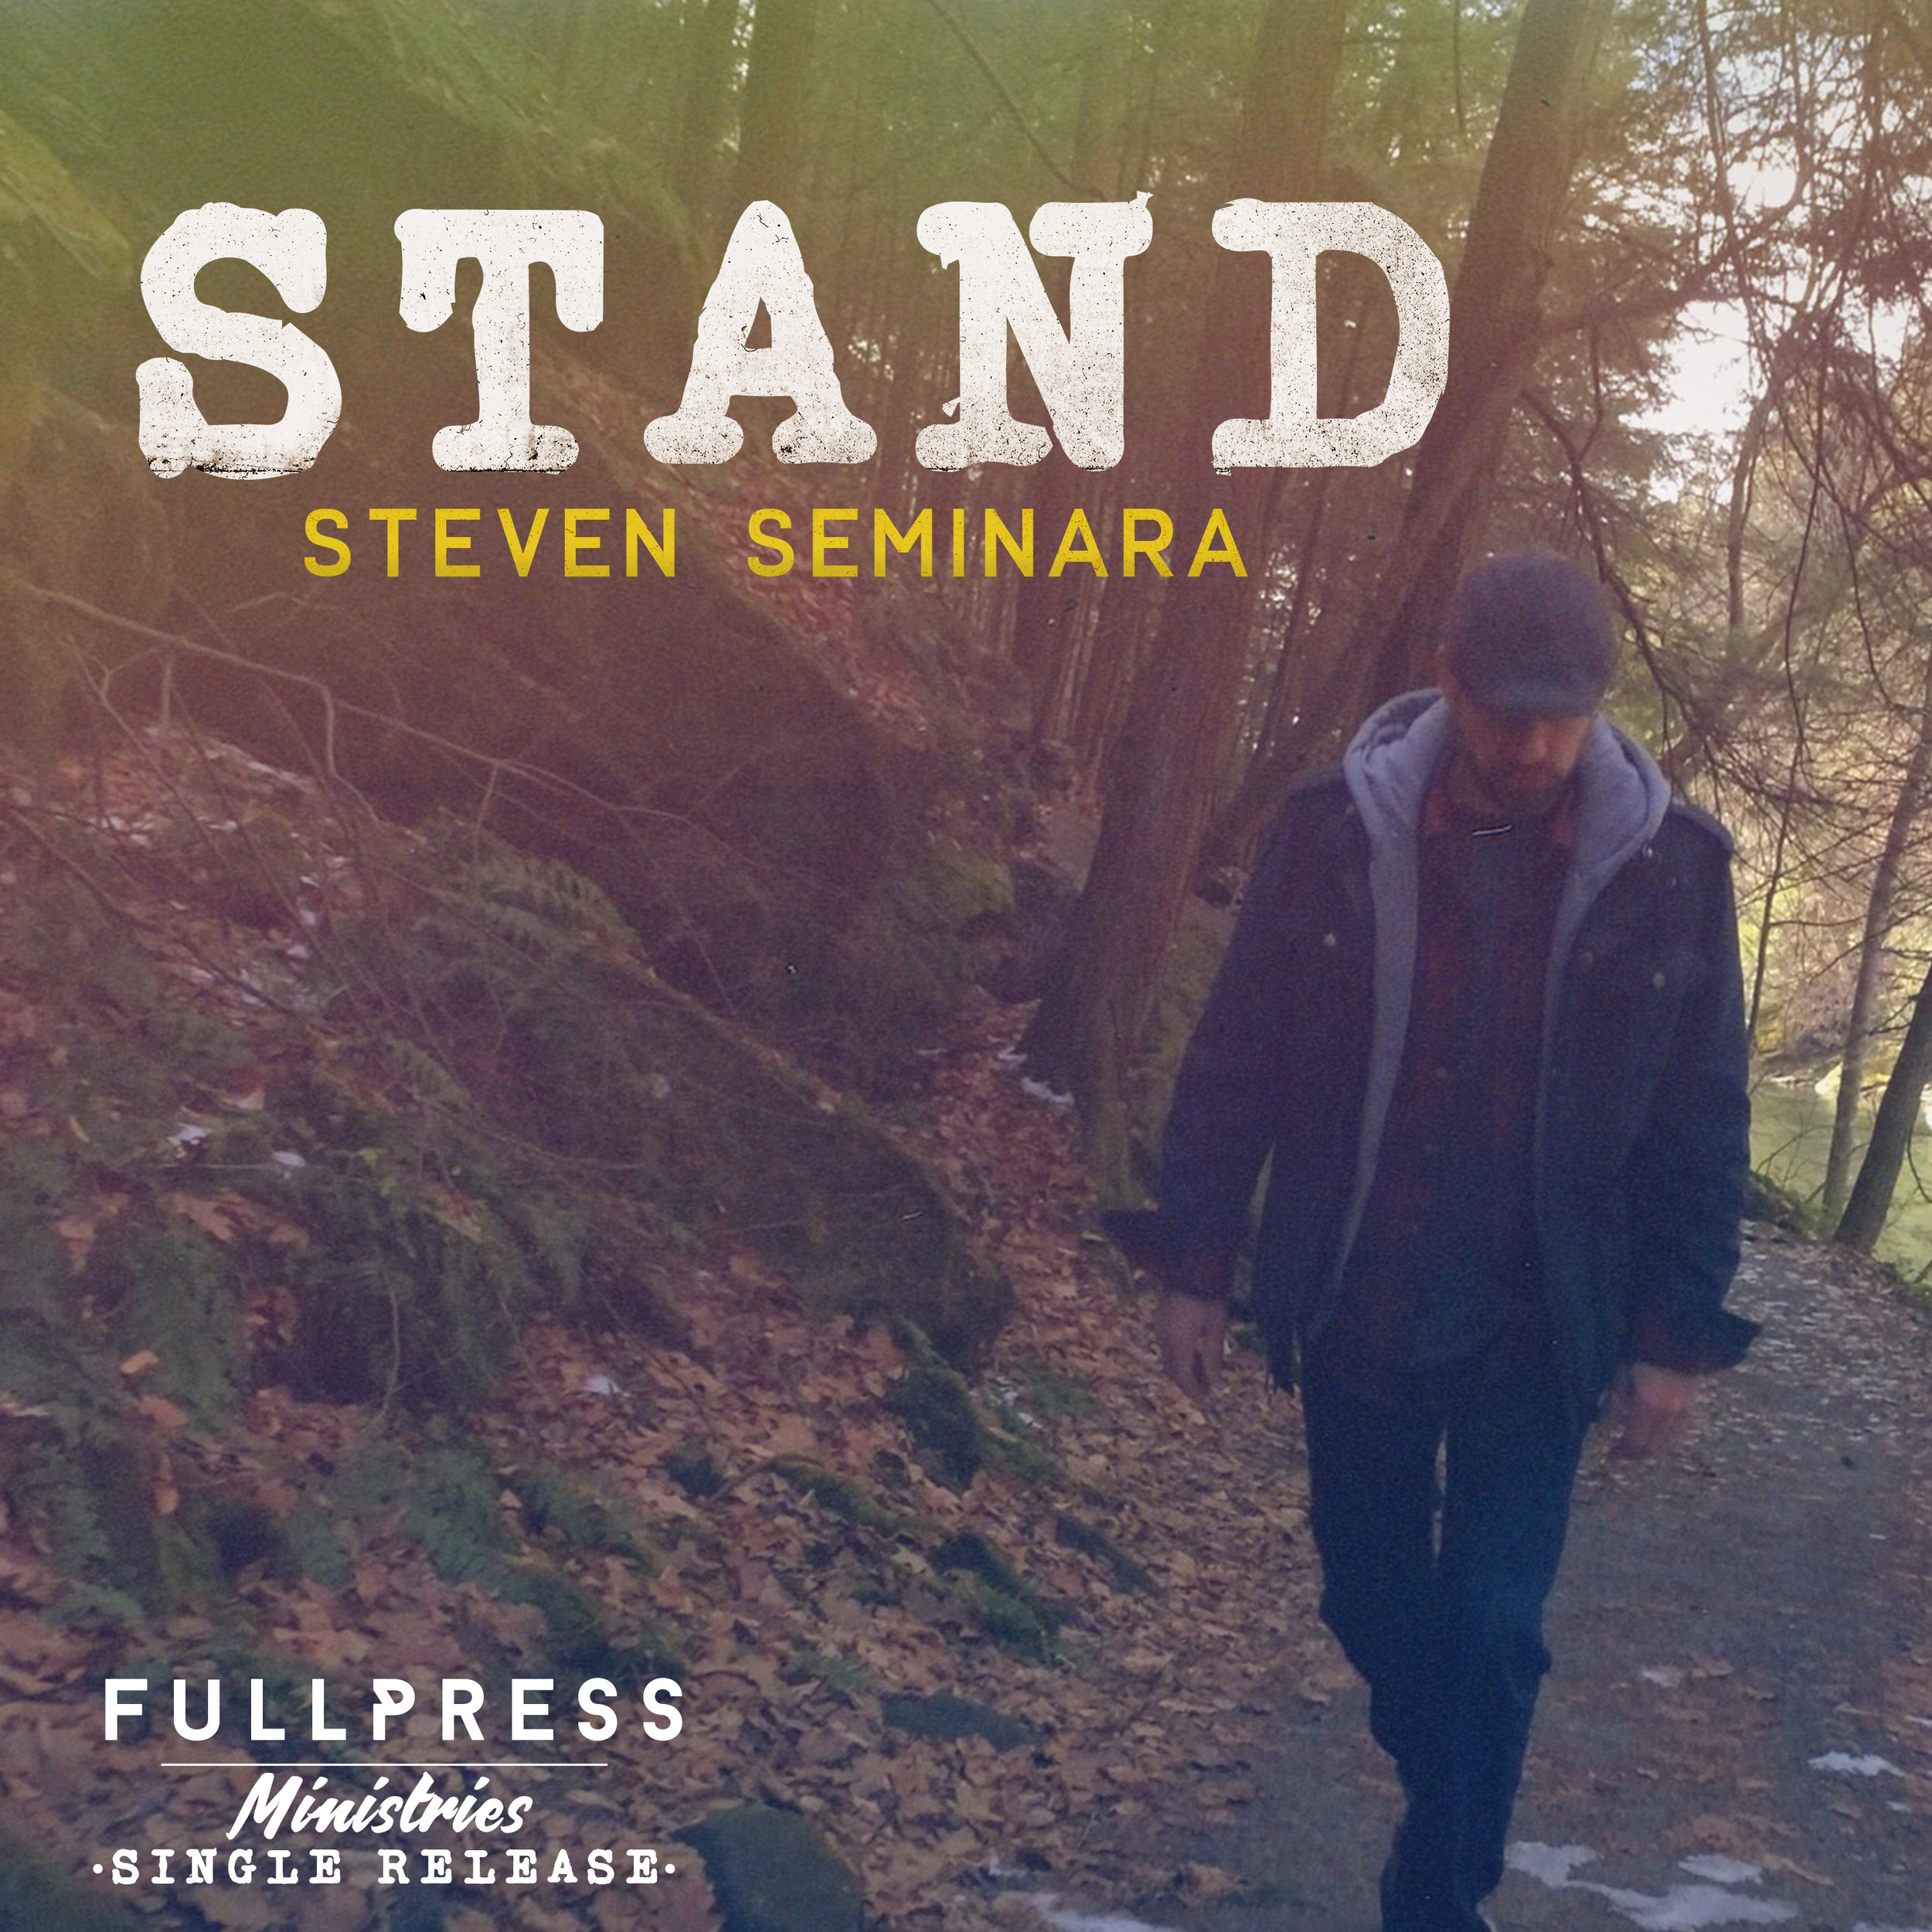 Stand - (Single)Click picture for purchase!